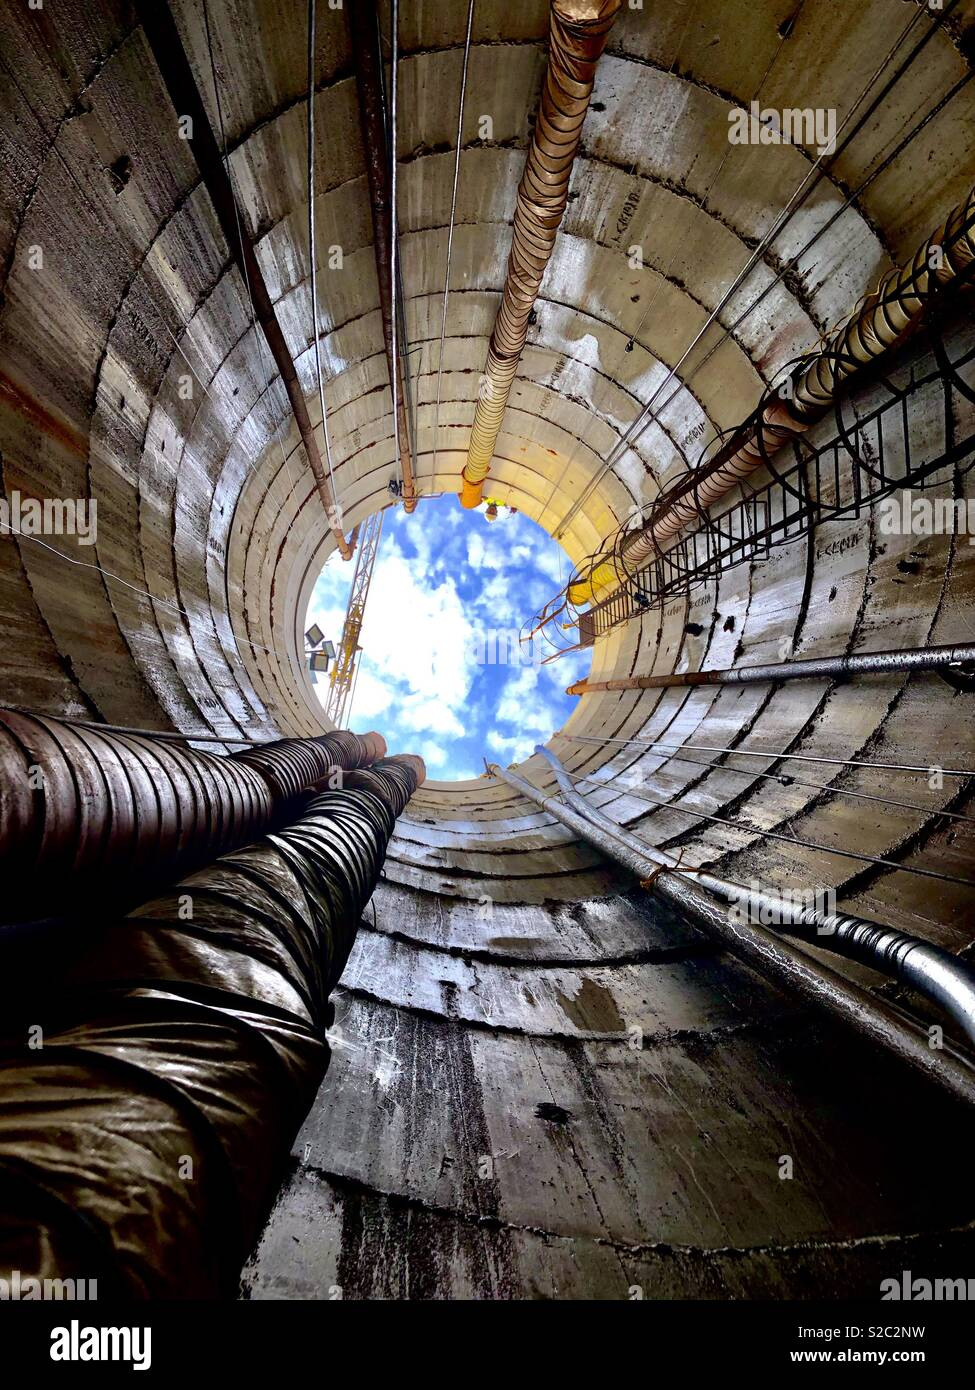 View from a Caisson Shaft - Stock Image